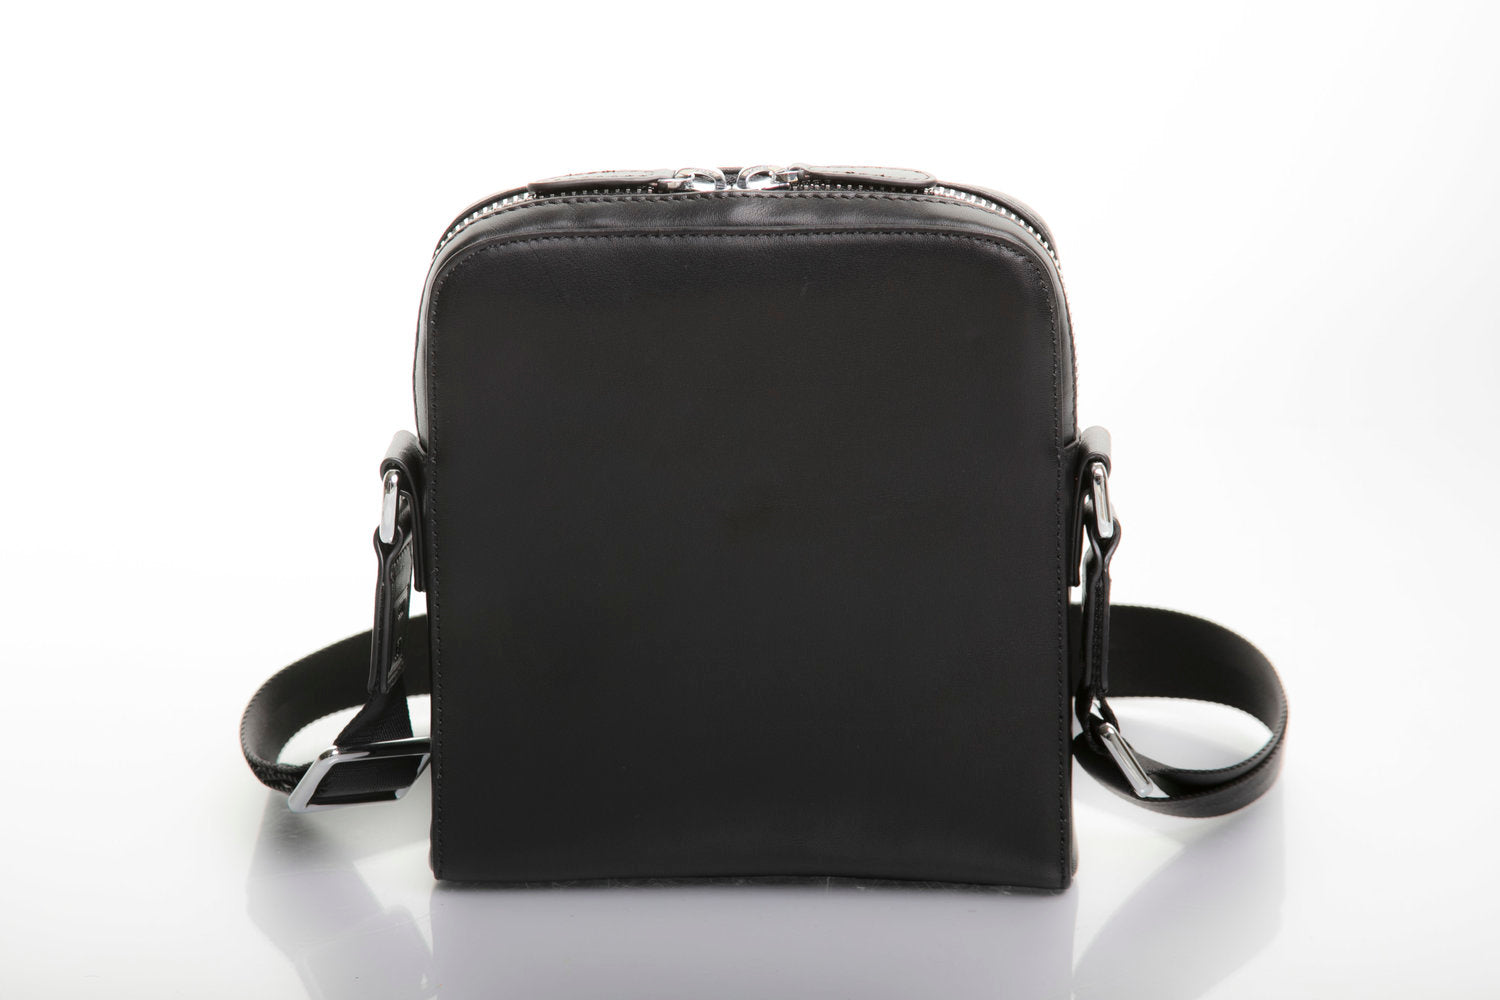 CB VIOR | Power Black Unisex Messenger Bag (SOLD OUT)